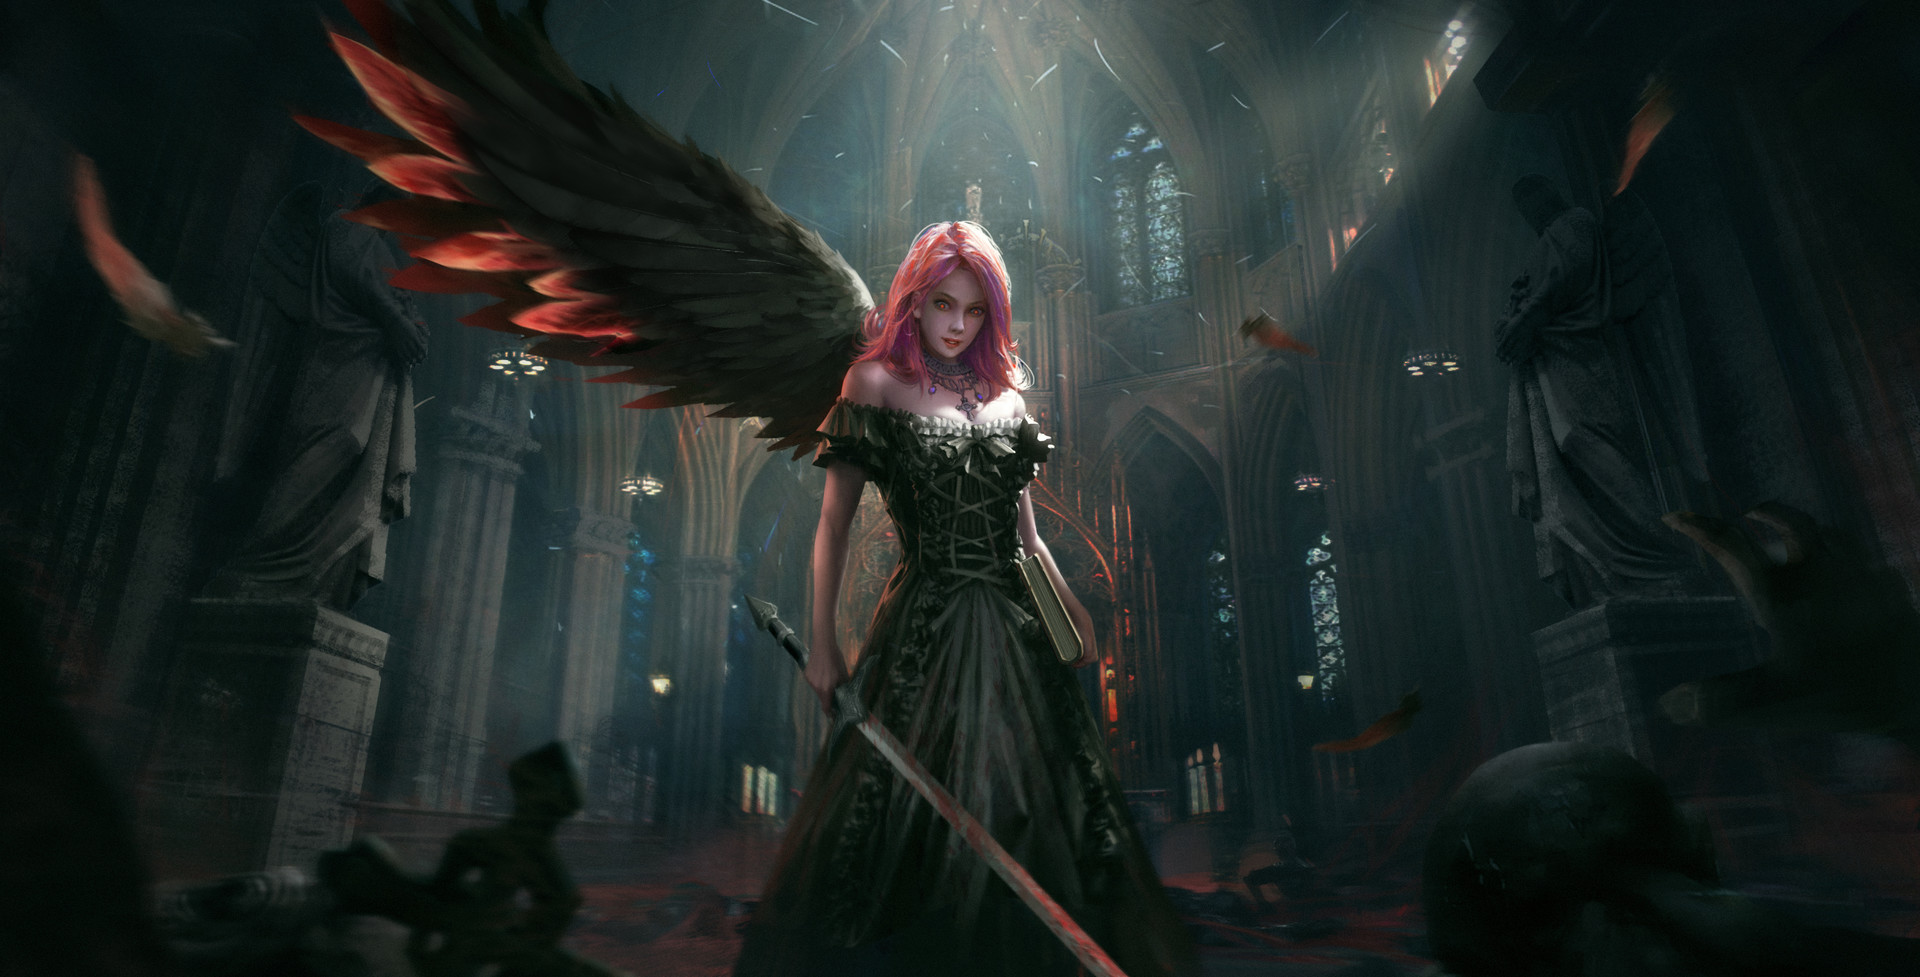 Dark Angel Hd Fantasy Girls 4k Wallpapers Images Backgrounds